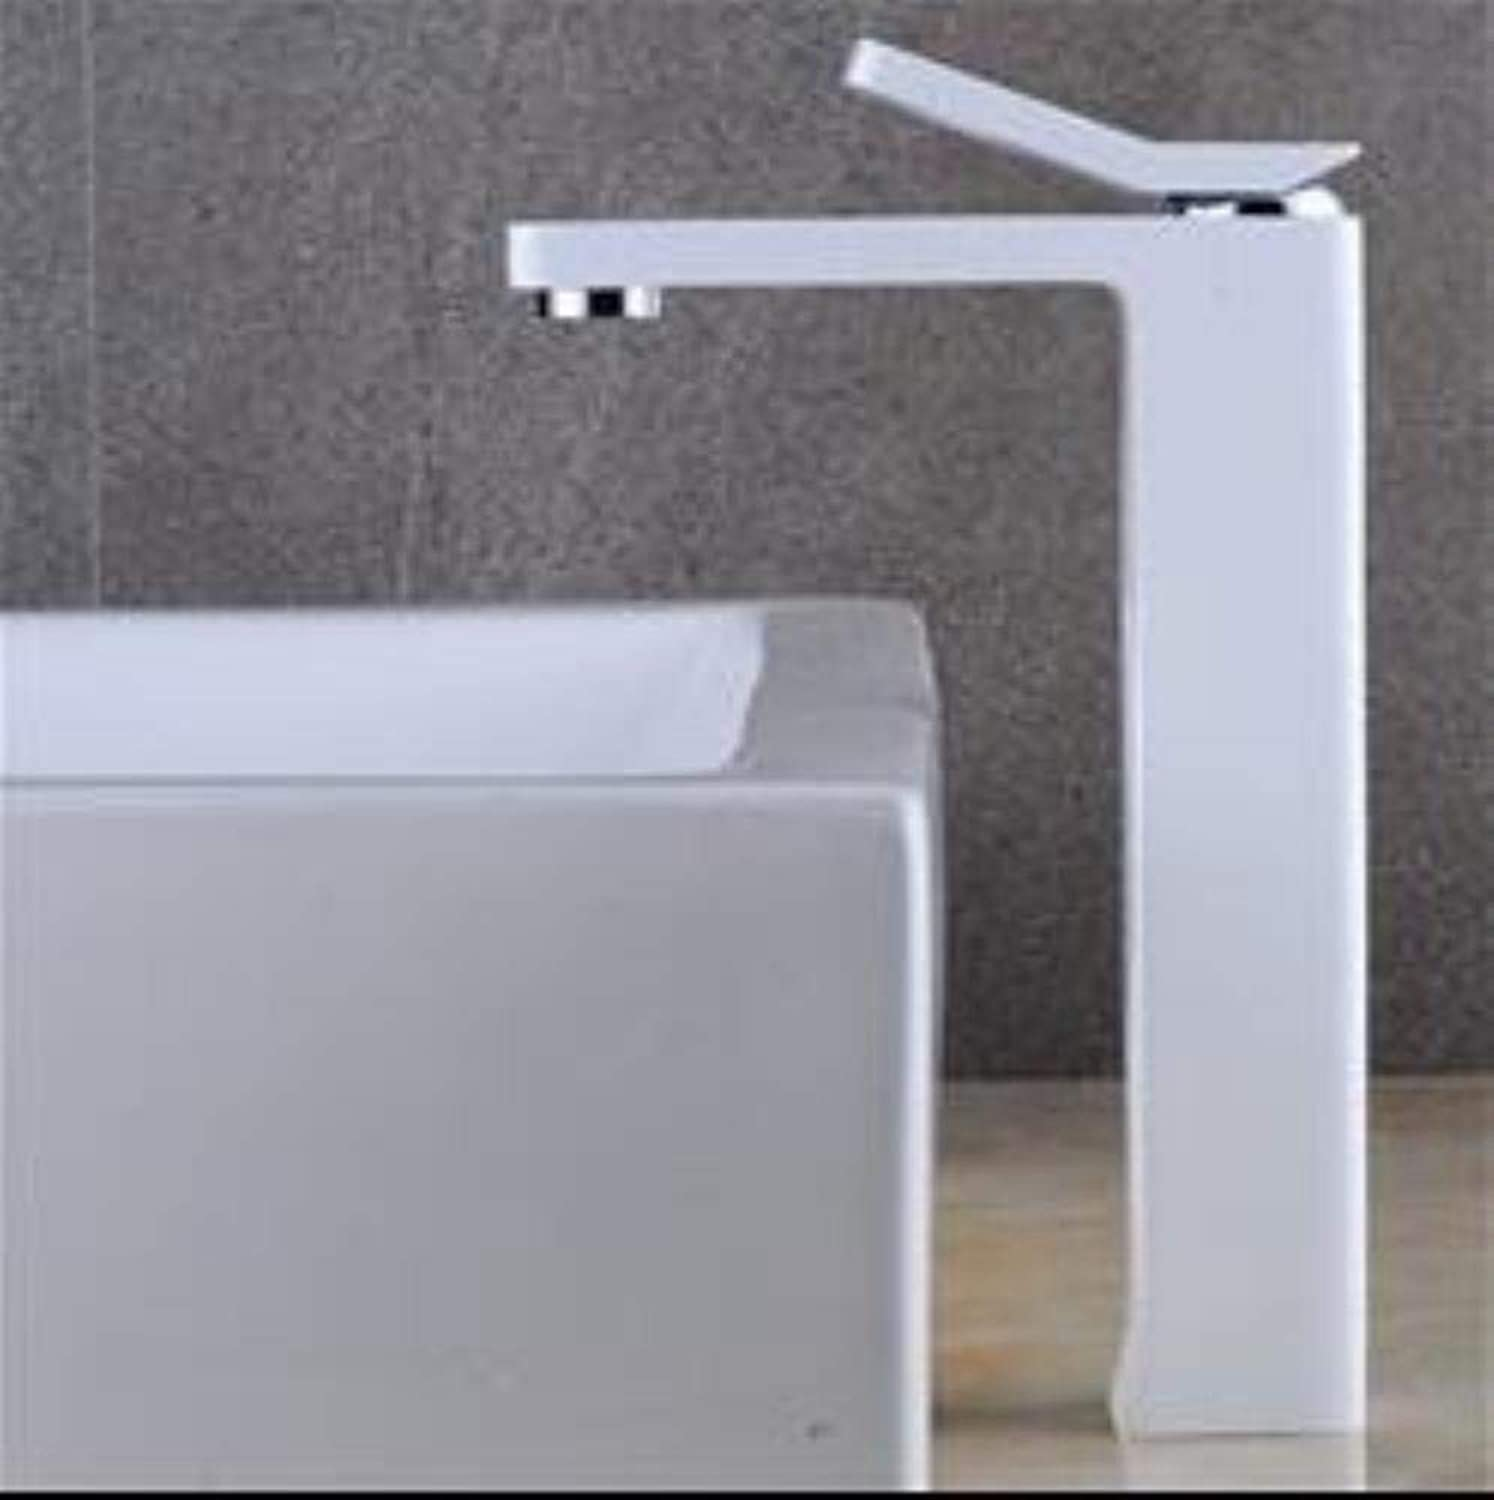 Kai&Guo Fashsion brass Basin Faucet hot and cold Water Faucet black single lever Wash Faucet bathroom sink faucet basin tap,long white